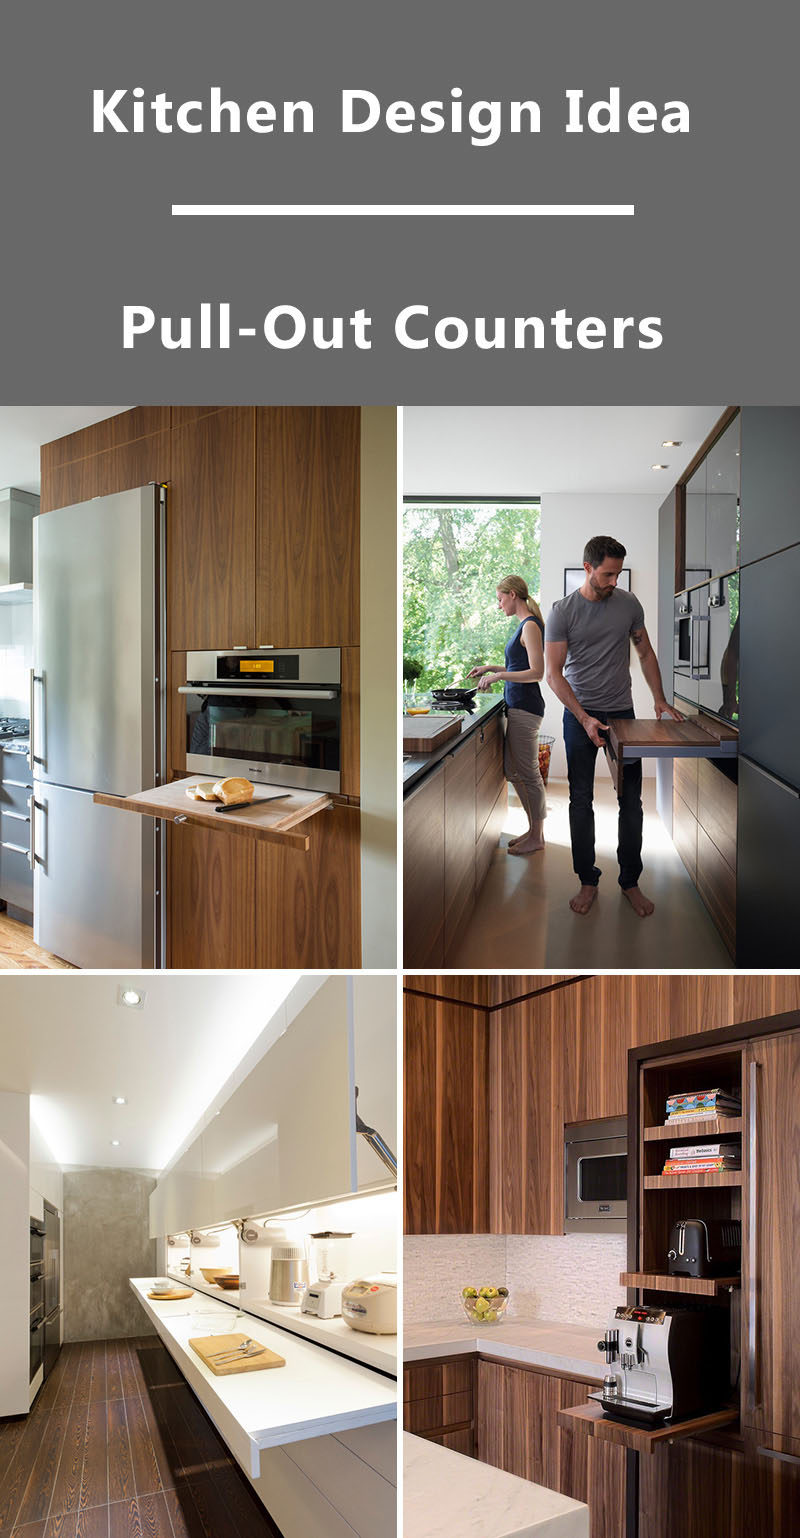 Kitchen Design Idea Pull Out Counters 10 Pictures